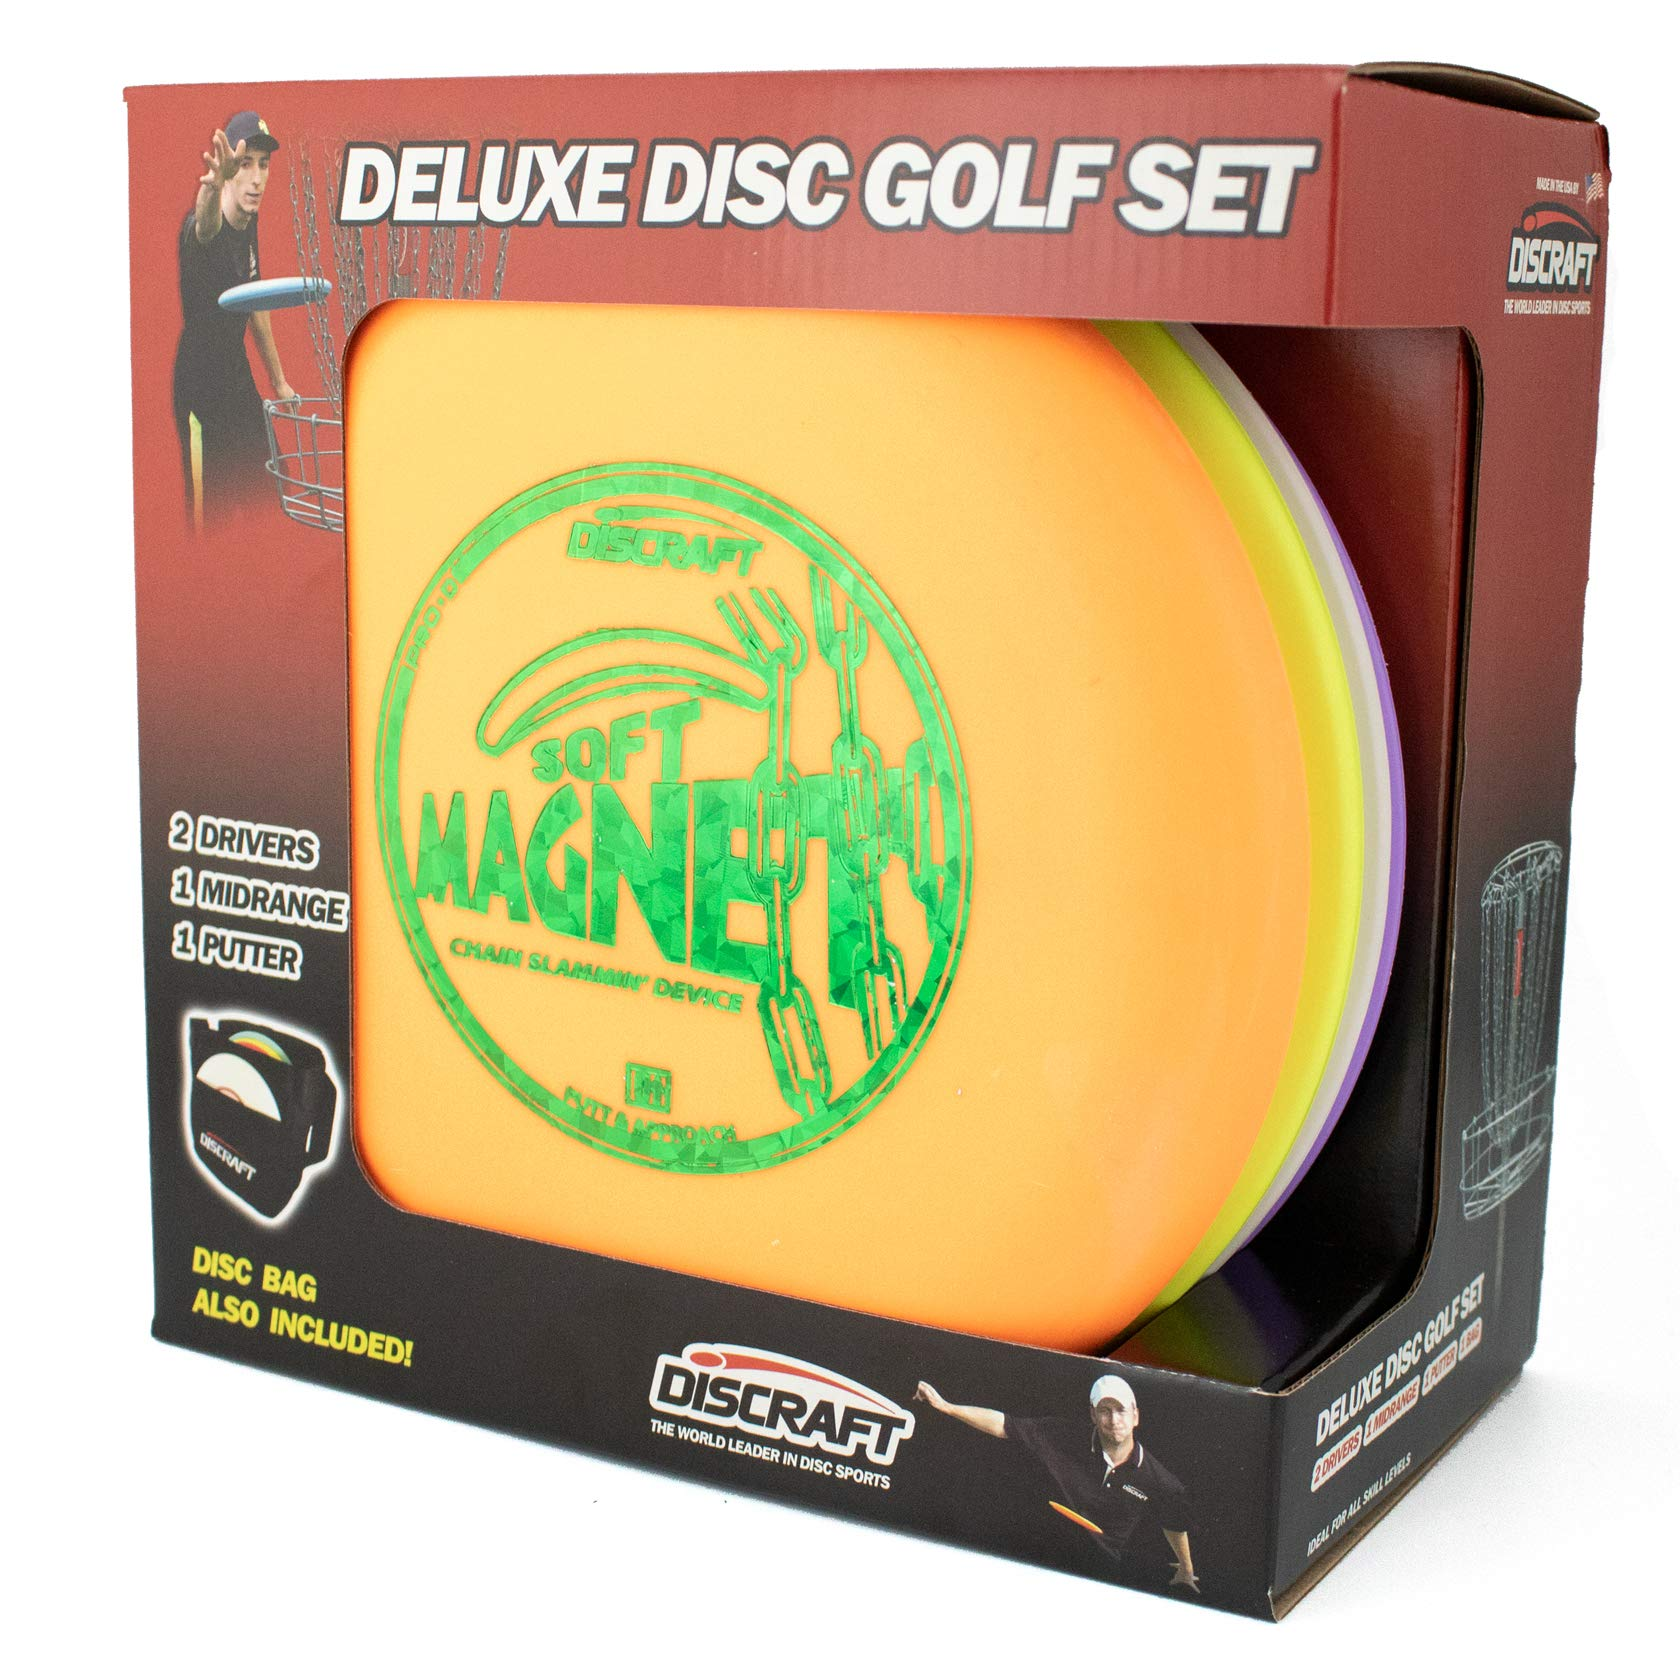 Discraft Deluxe Disc Golf Set (4 Disc and Bag)Models and plastic blends may vary by Discraft